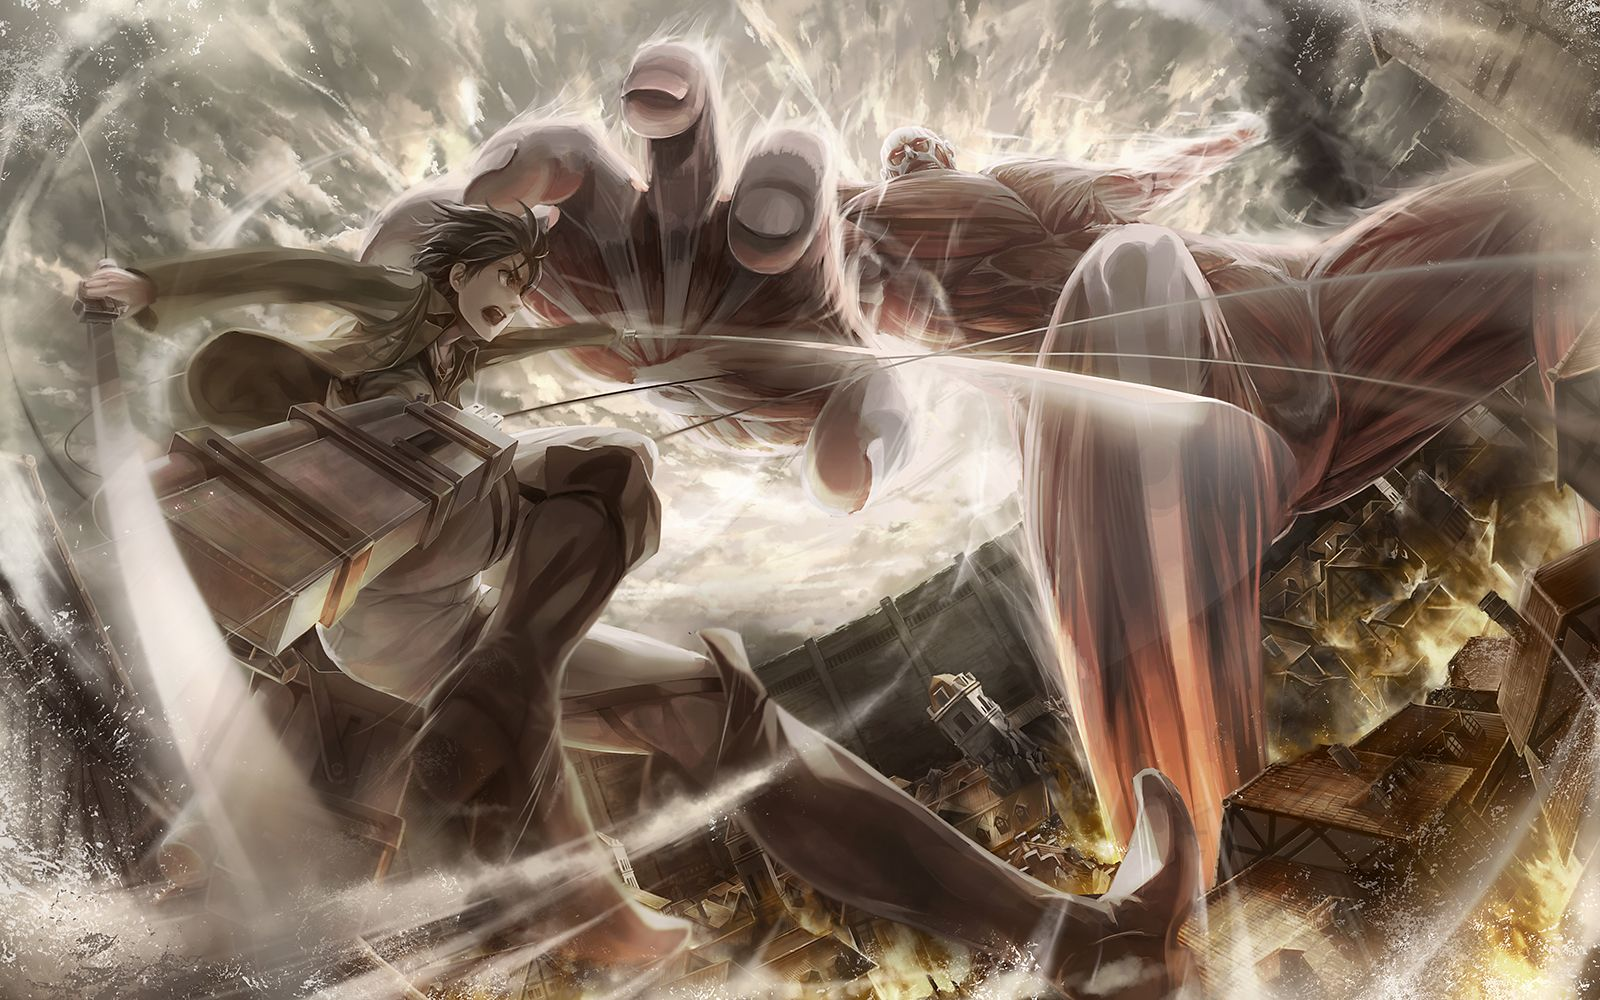 Eren Vs Titan Colosal Computer Wallpapers Desktop Backgrounds 1600x1000 Id 632840 Attack On Titan Anime Titans